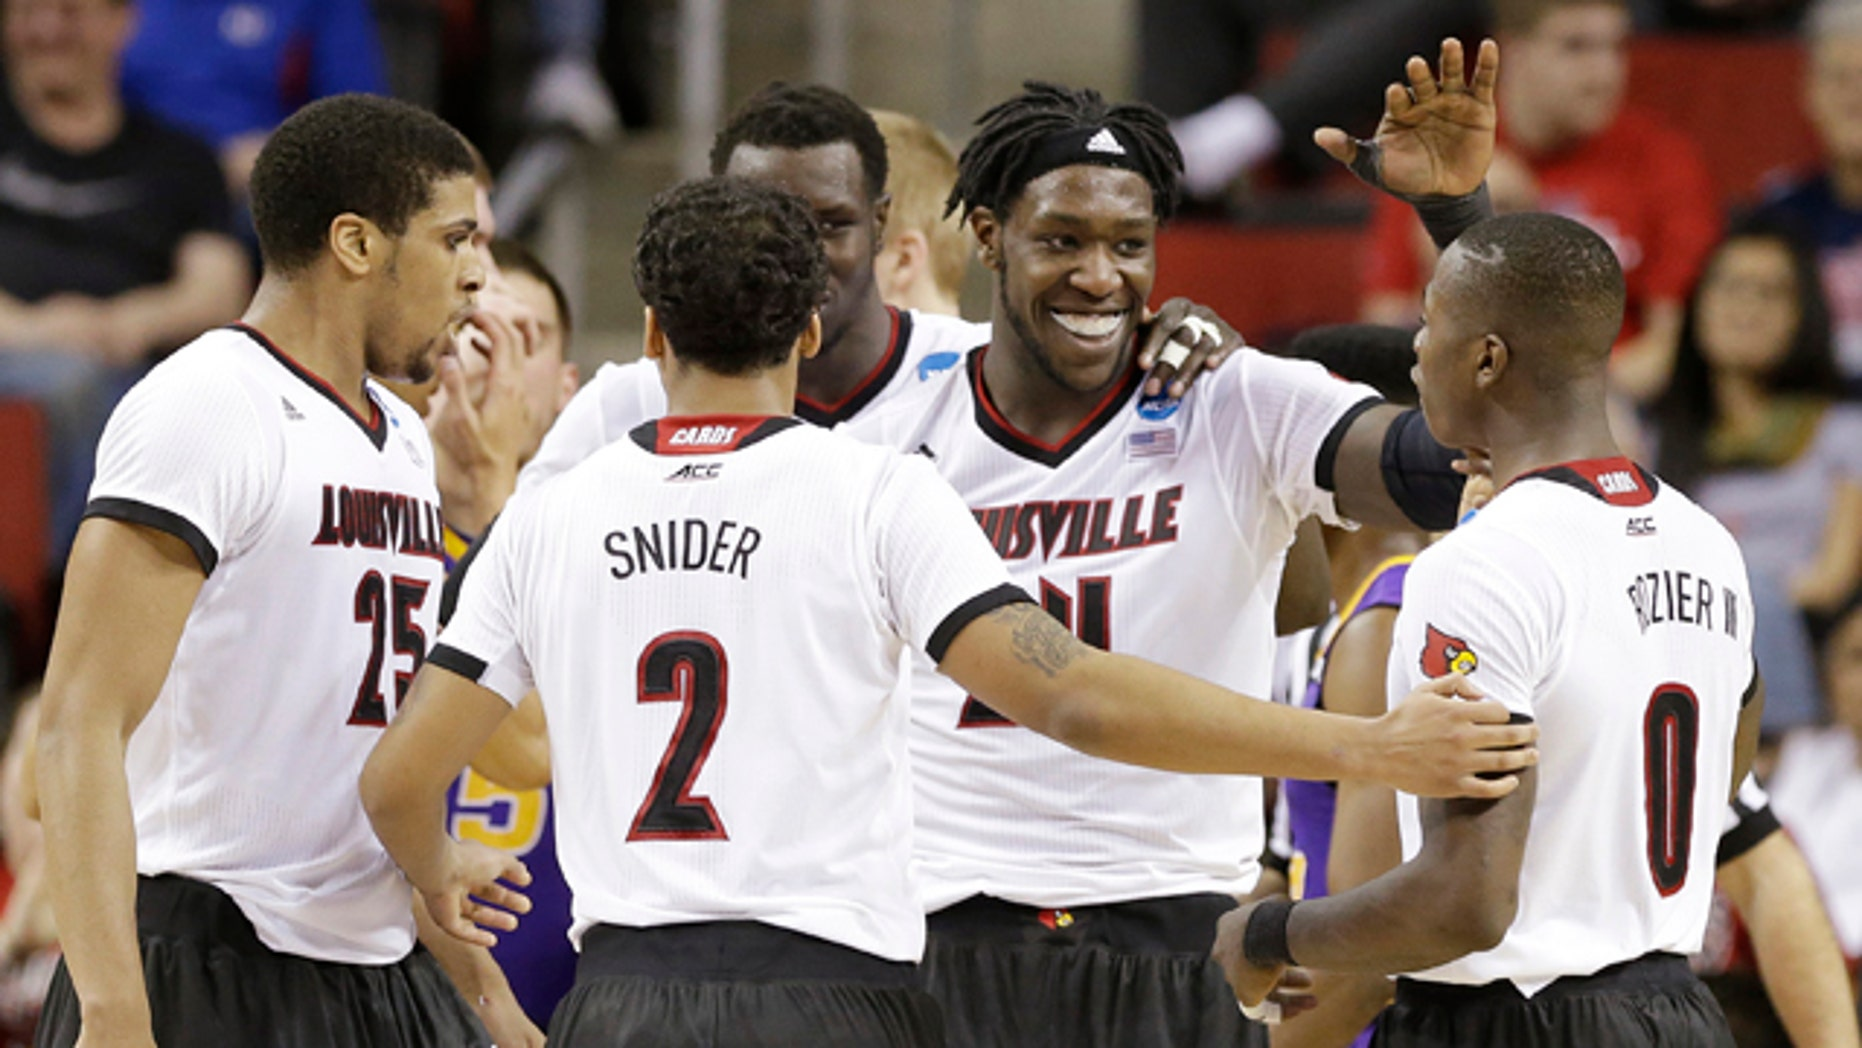 March 22, 2015: Louisville's Montrezl Harrell, second from right, celebrates with teammate Terry Rozier after Harrell dunked against Northern Iowa in the second half of an NCAA tournament college basketball game in the Round of 32 in Seattle. Louisville won 66-53. (AP Photo/Elaine Thompson)